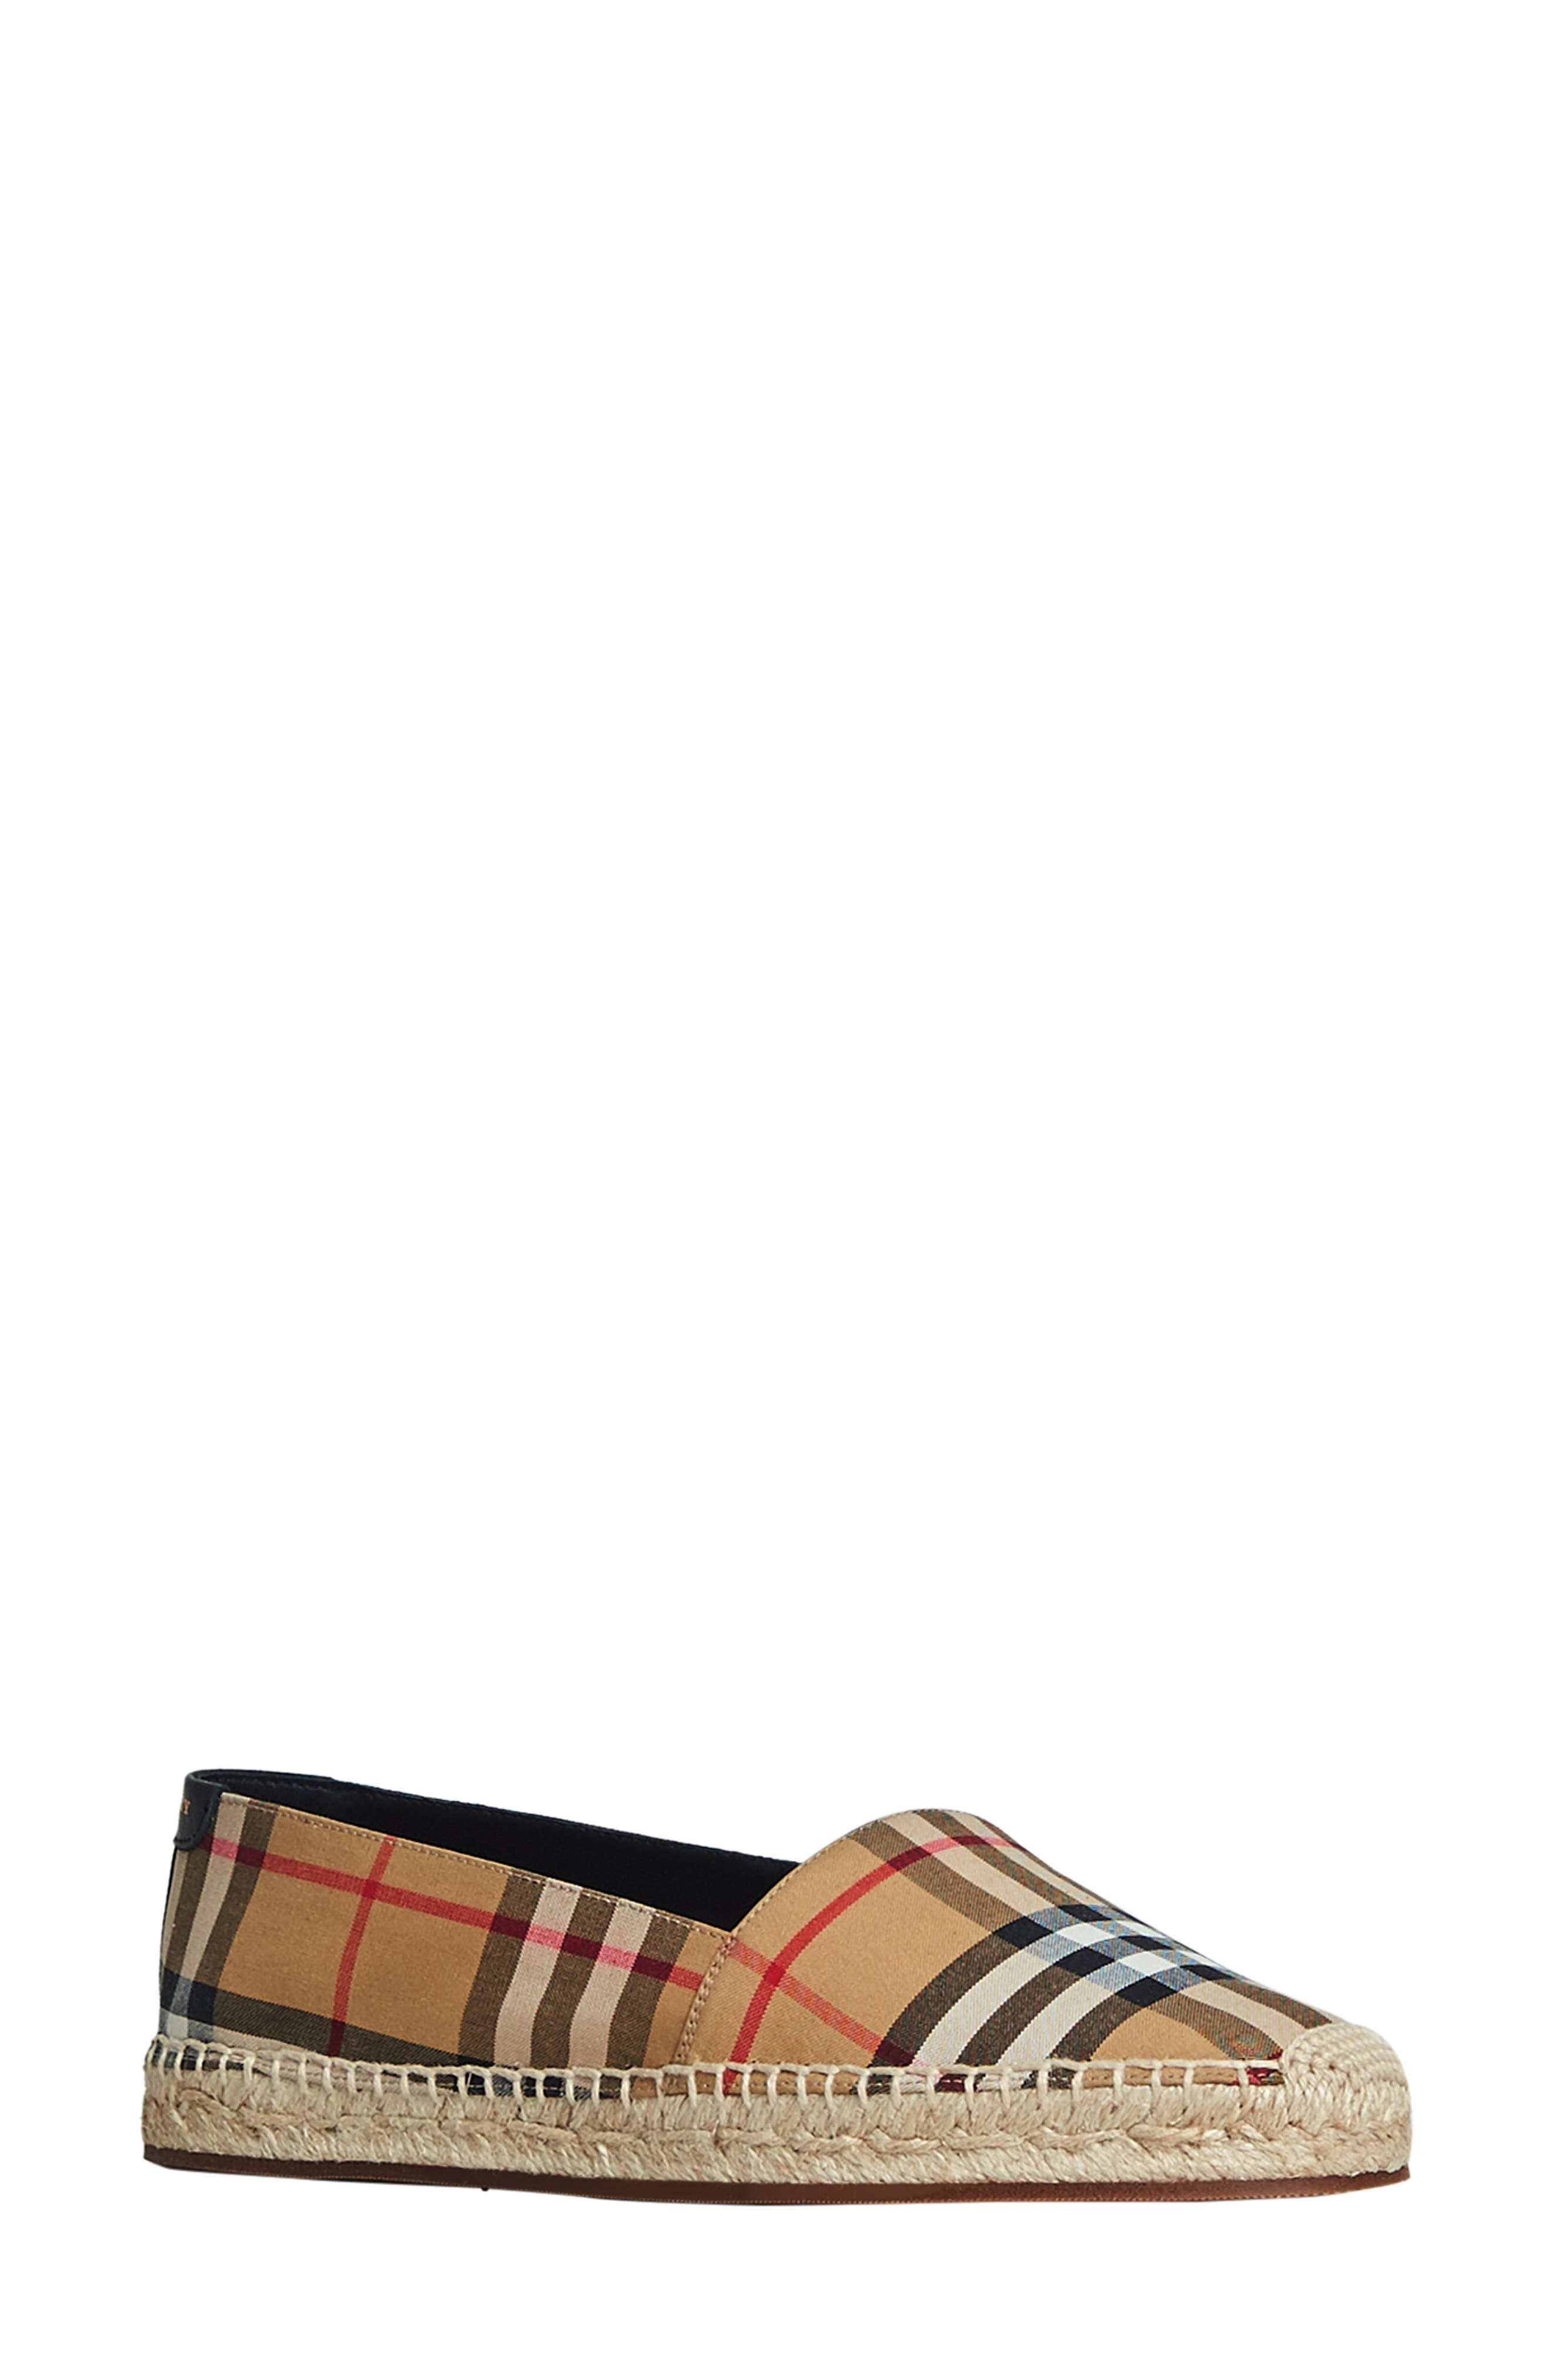 BURBERRY Hodgeson Check Print Espadrille Flat, Main, color, ANTIQUE YELLOW